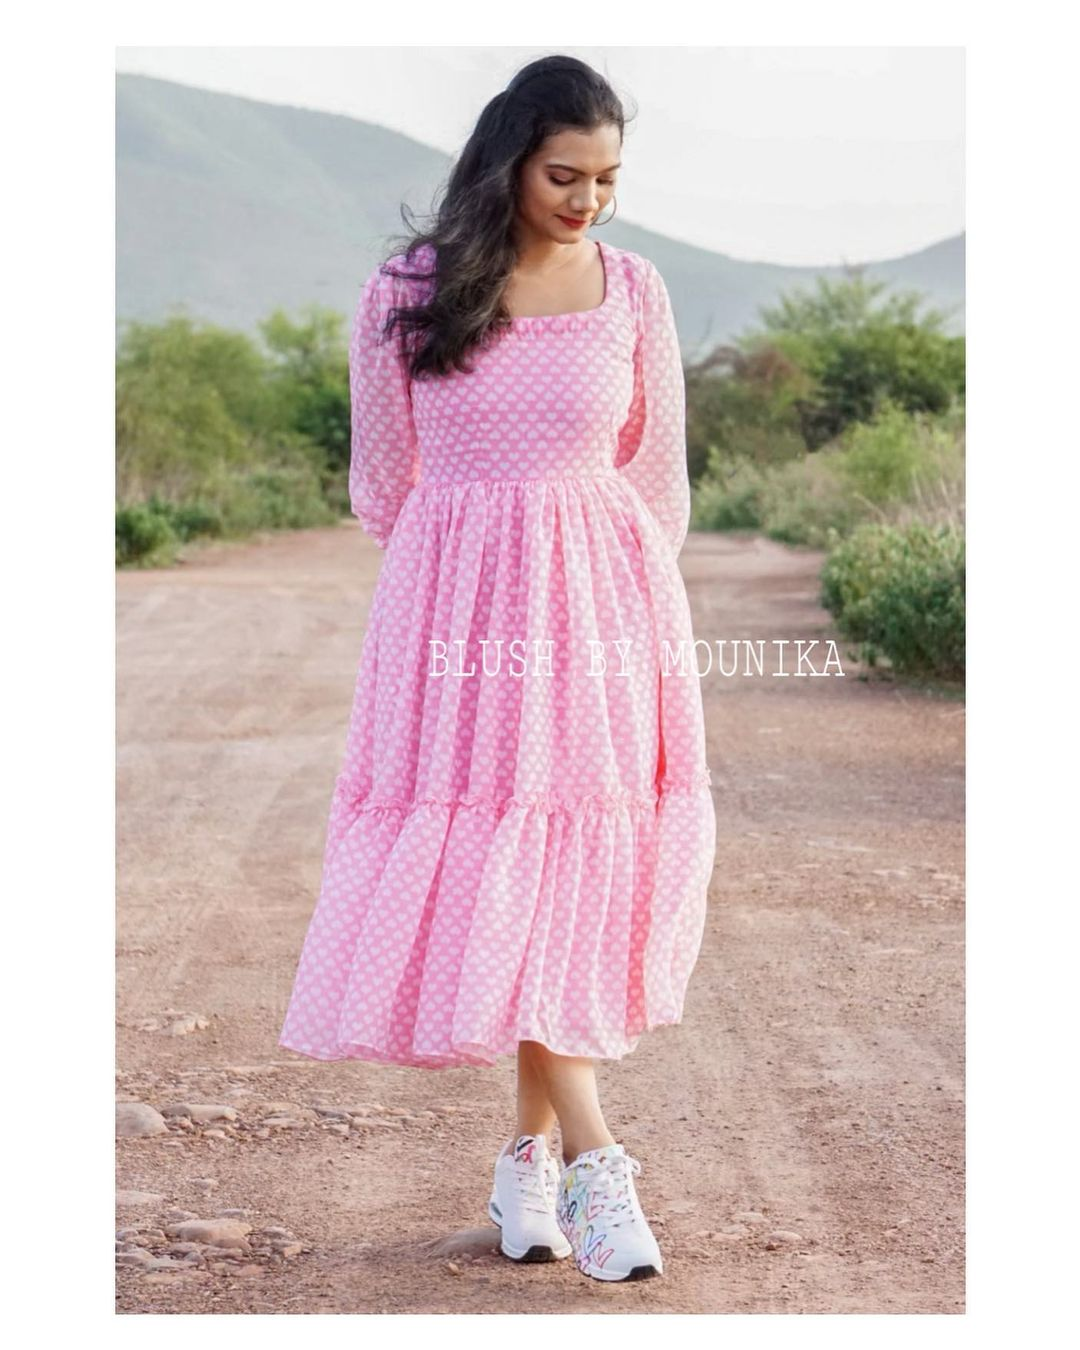 Pink and blue georgette frock with heart print. The dress has elasticated balloon sleeves and ruffled flare. 2021-06-21